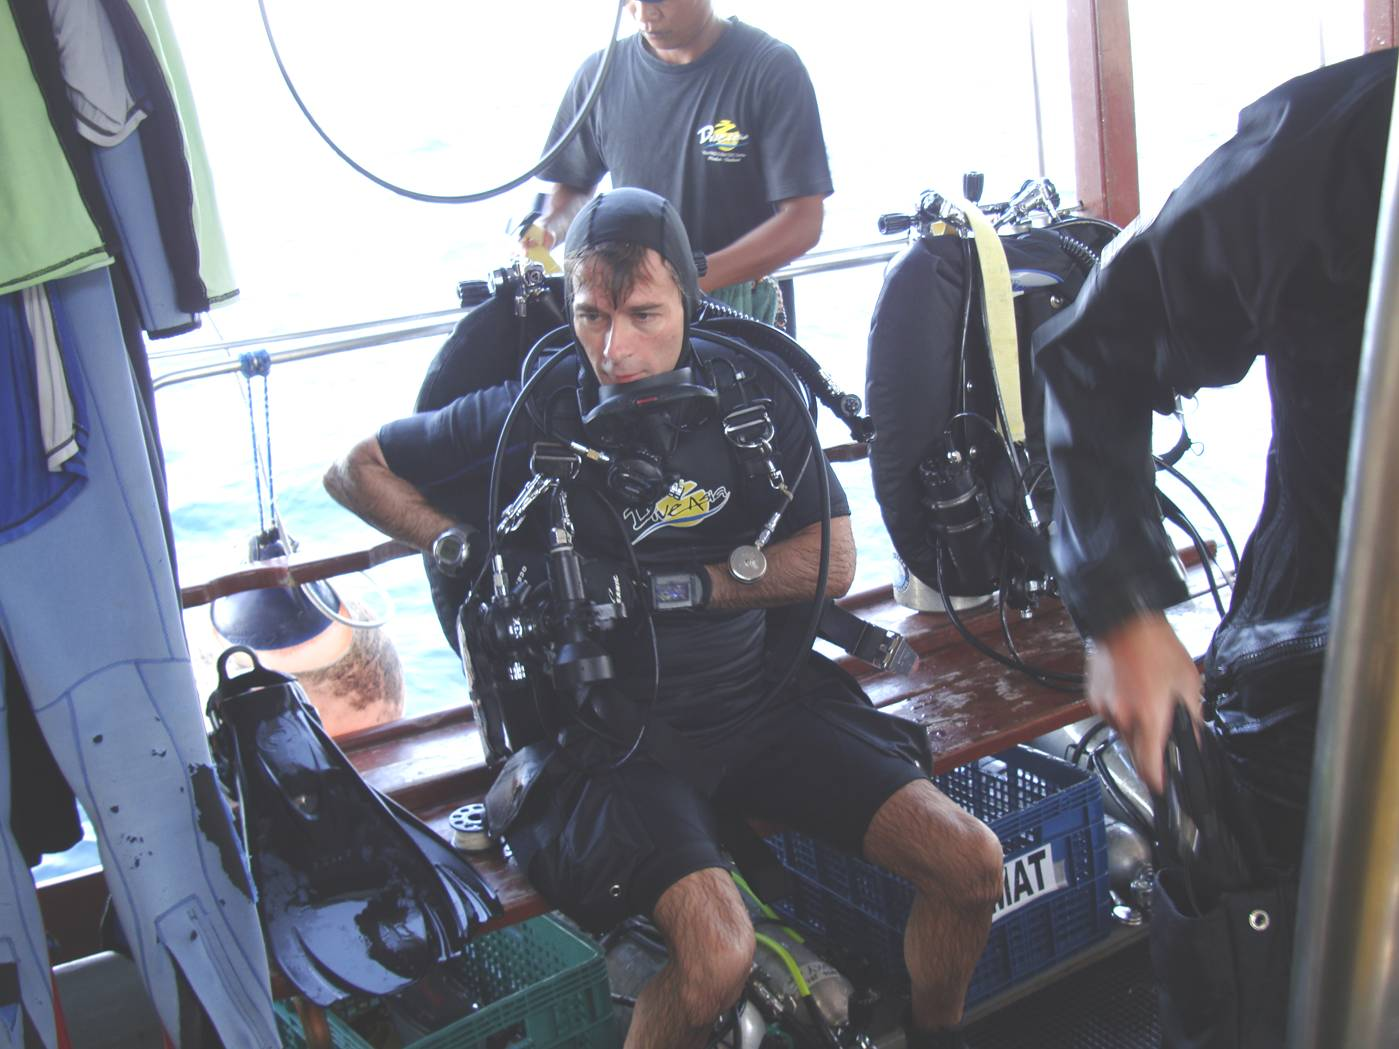 Picture:  Doug tricked out in his high tech diving gear on board Dive Asia out of Karon Beach, Phuket Island, Thailand.